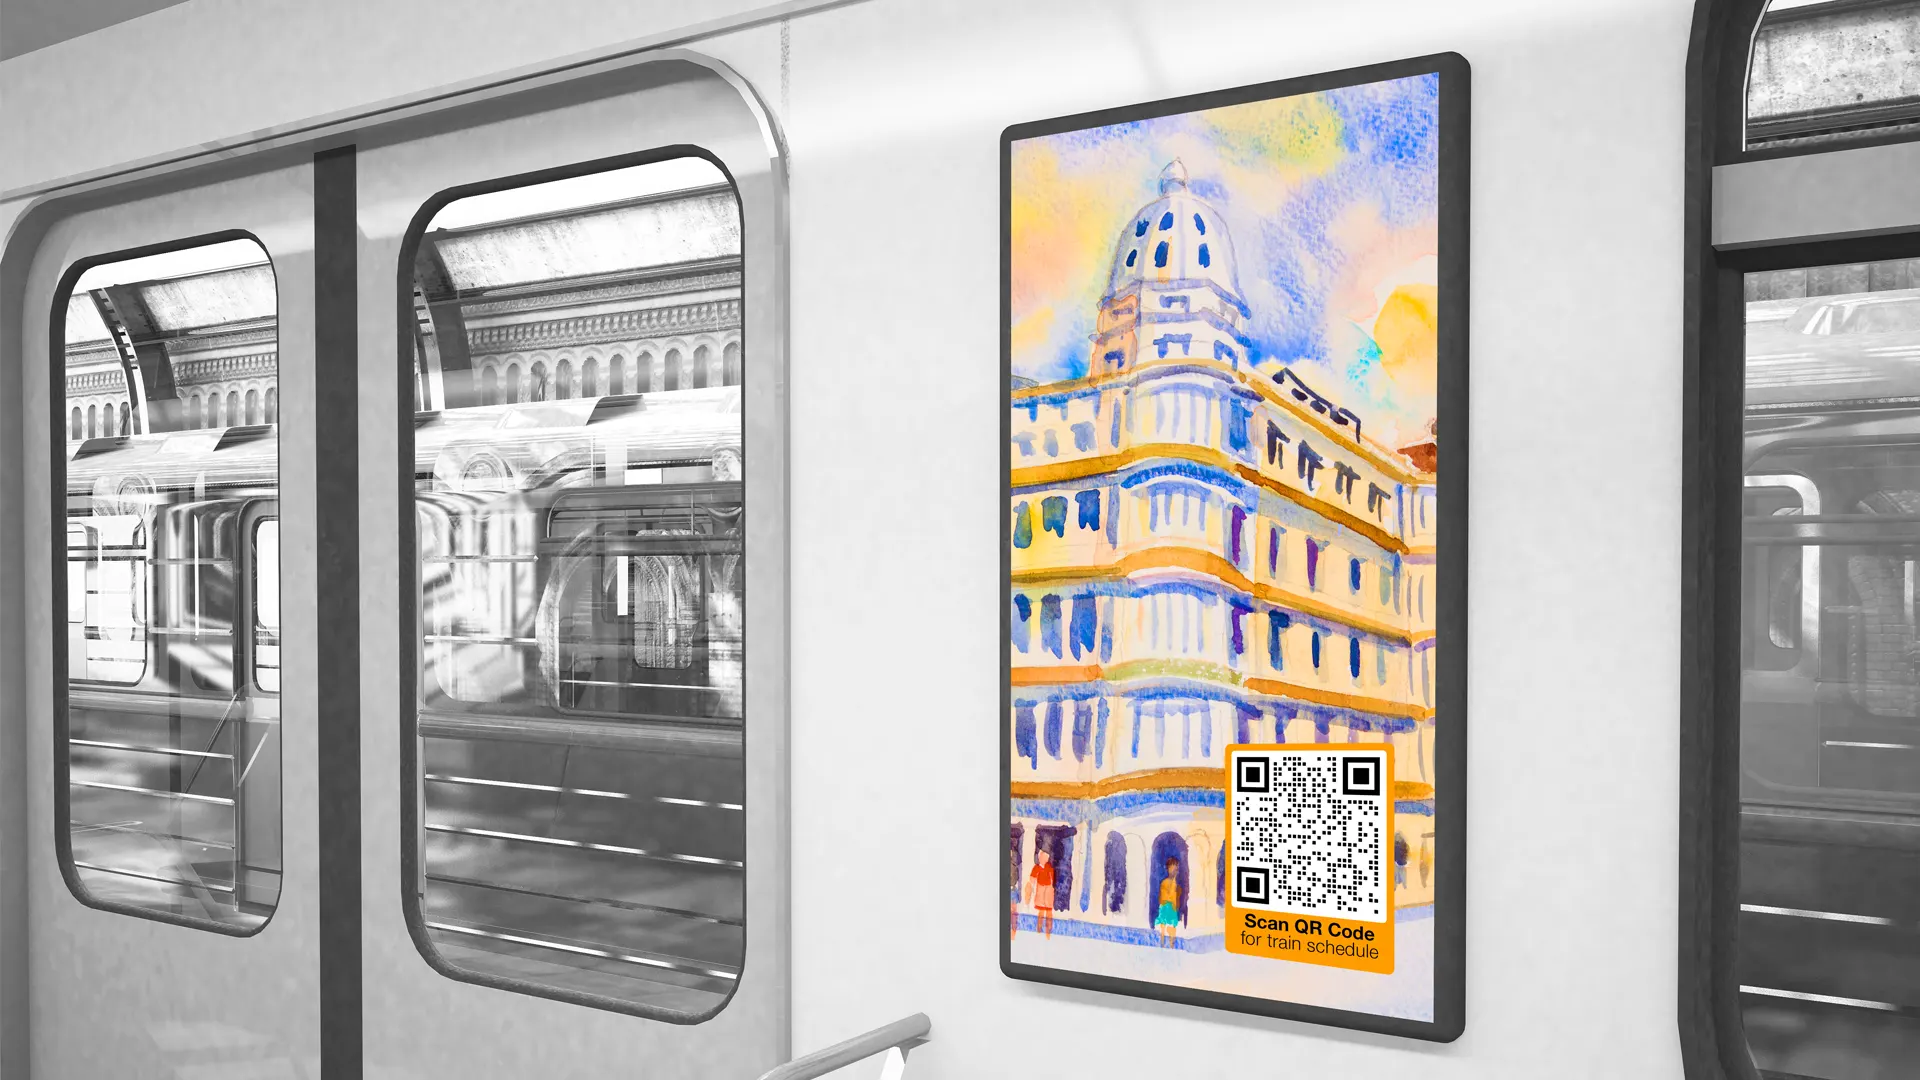 creative uses of qr codes trains bus stops